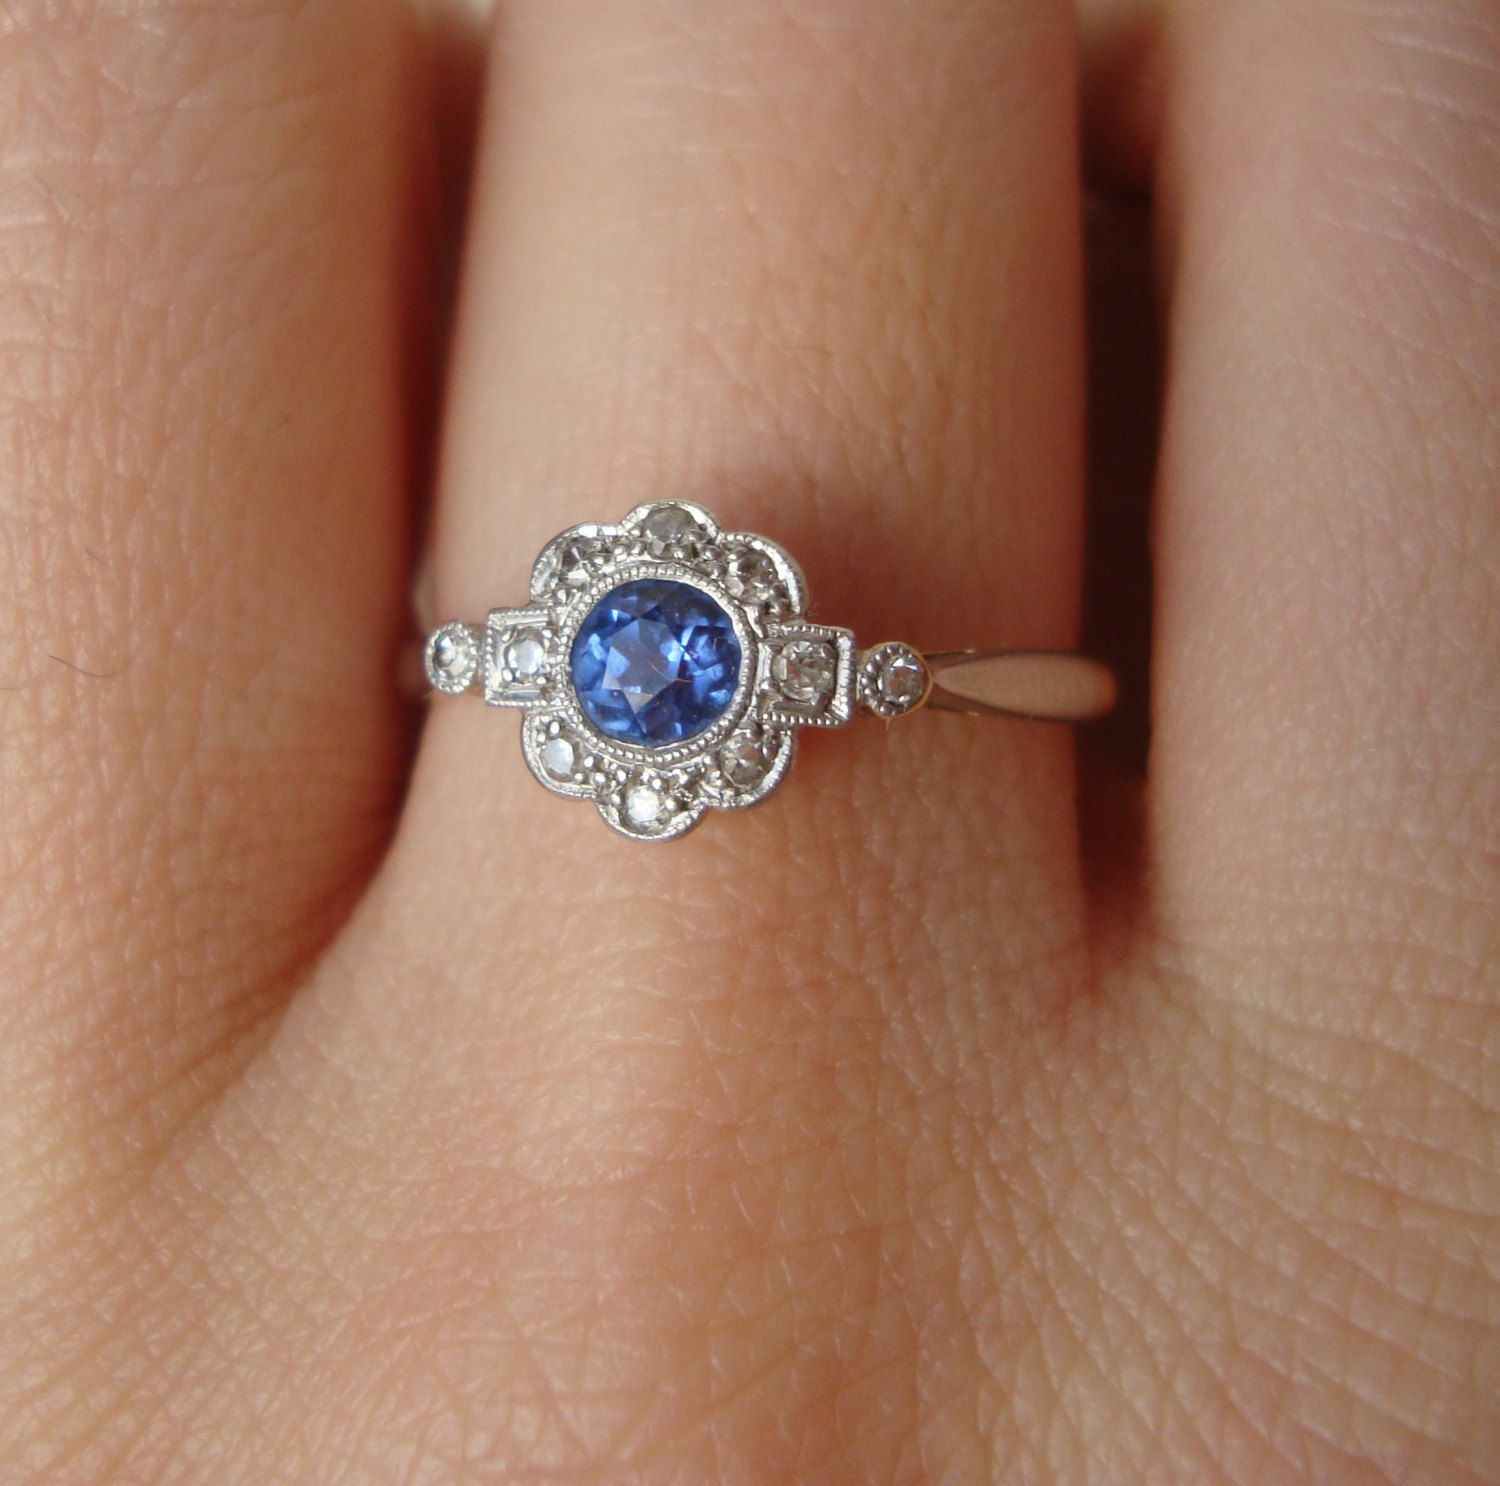 ring wedding diamond kara engagement the royal rings detailed promise hand stella collection vintage from engraved kirk blue cut